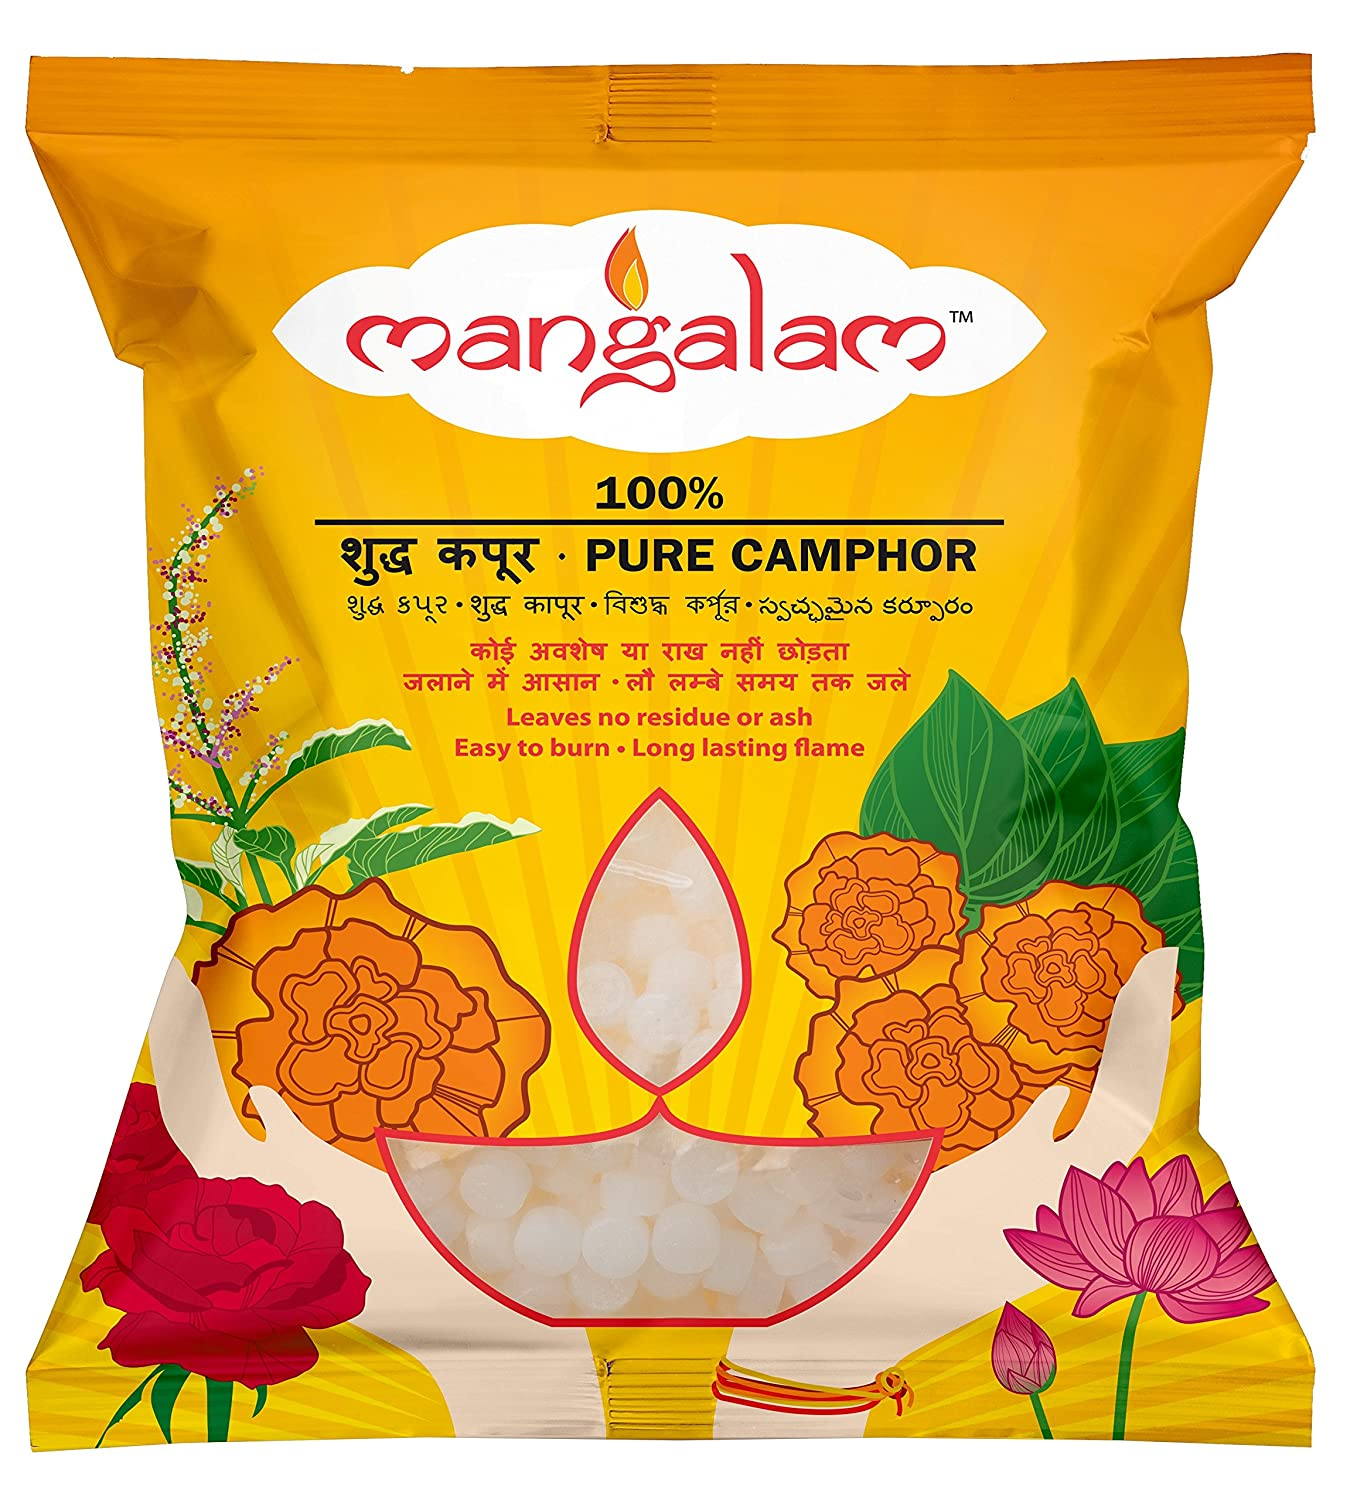 Mangalam Pure Camphor Tablets for Puja, Aarti, Meditation